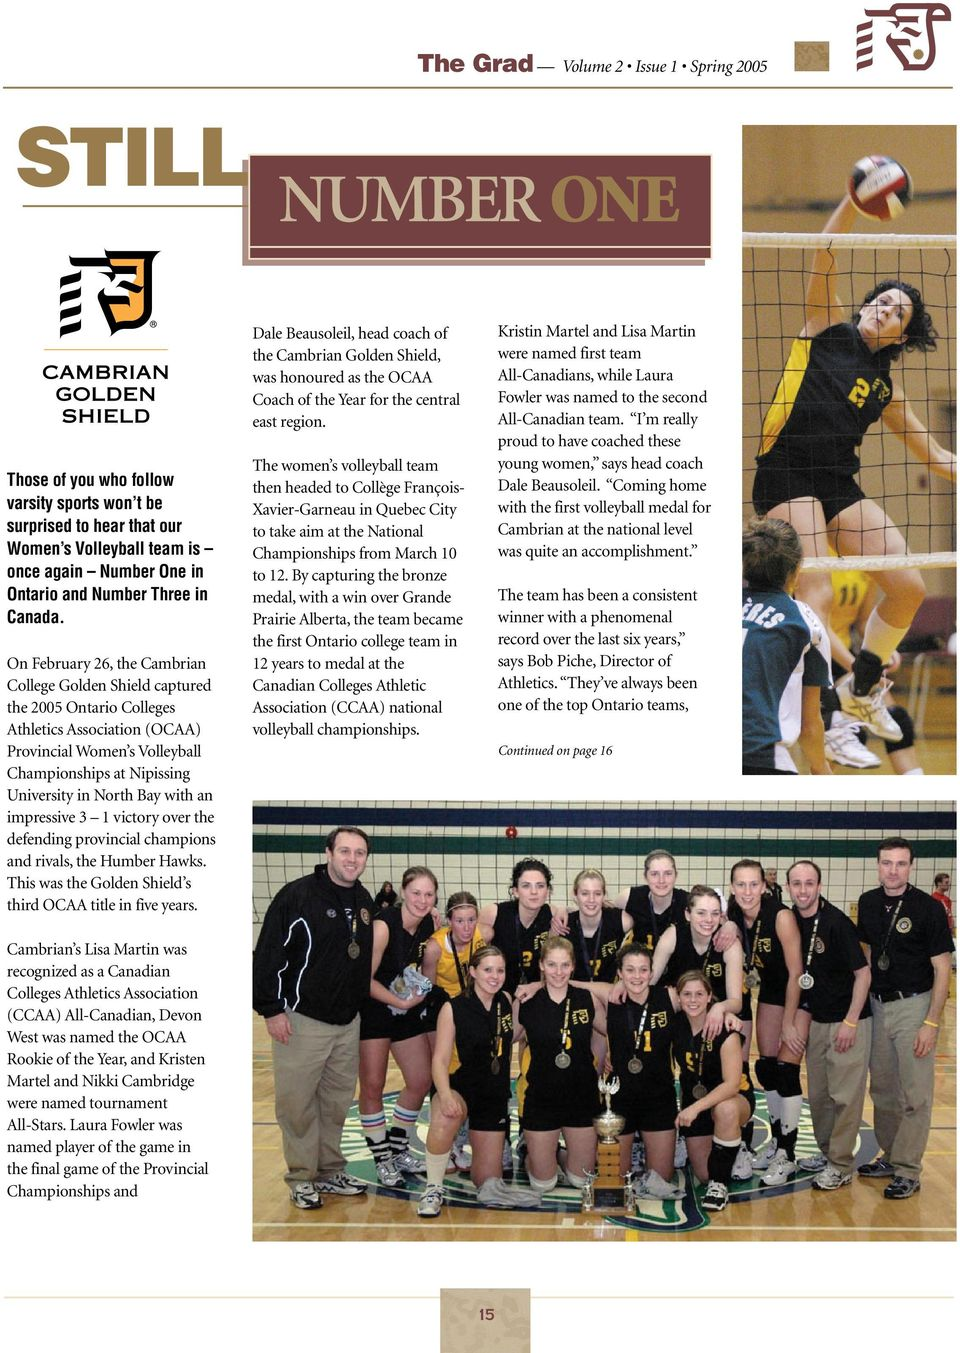 On February 26, the Cambrian College Golden Shield captured the 2005 Ontario Colleges Athletics Association (OCAA) Provincial Women s Volleyball Championships at Nipissing University in North Bay